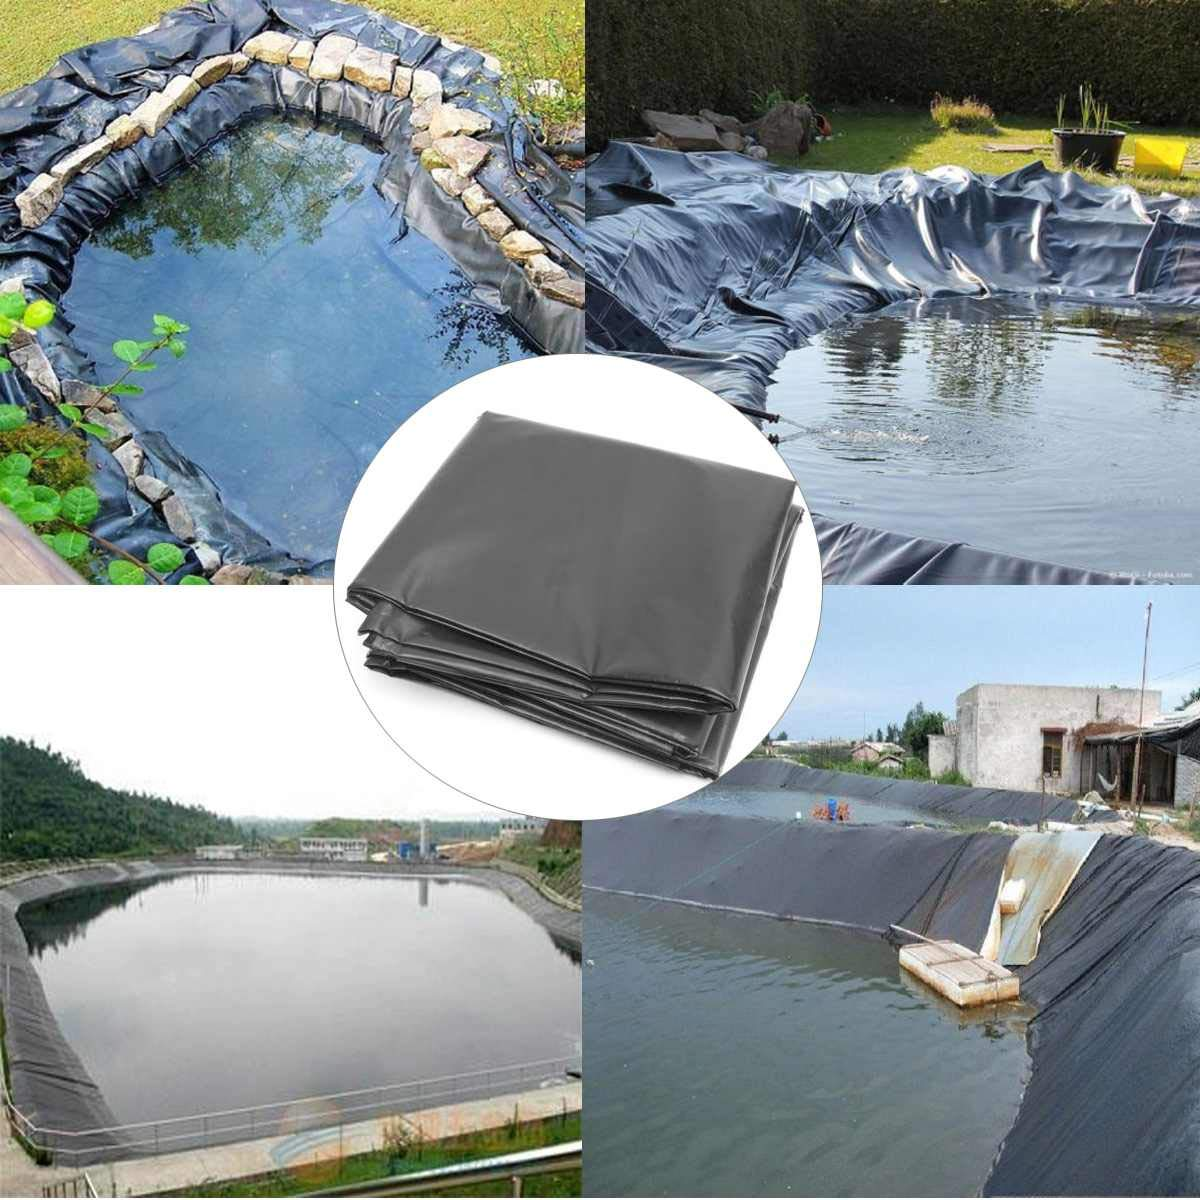 HDPE Fish Pond Liner 1.7x4m / 1.7x3m / 1.7x2m Garden Pond Landscaping Pool Reinforced Thick Heavy Duty Waterproof Membrane Liner (1.7x3 meter) by B2 YOU